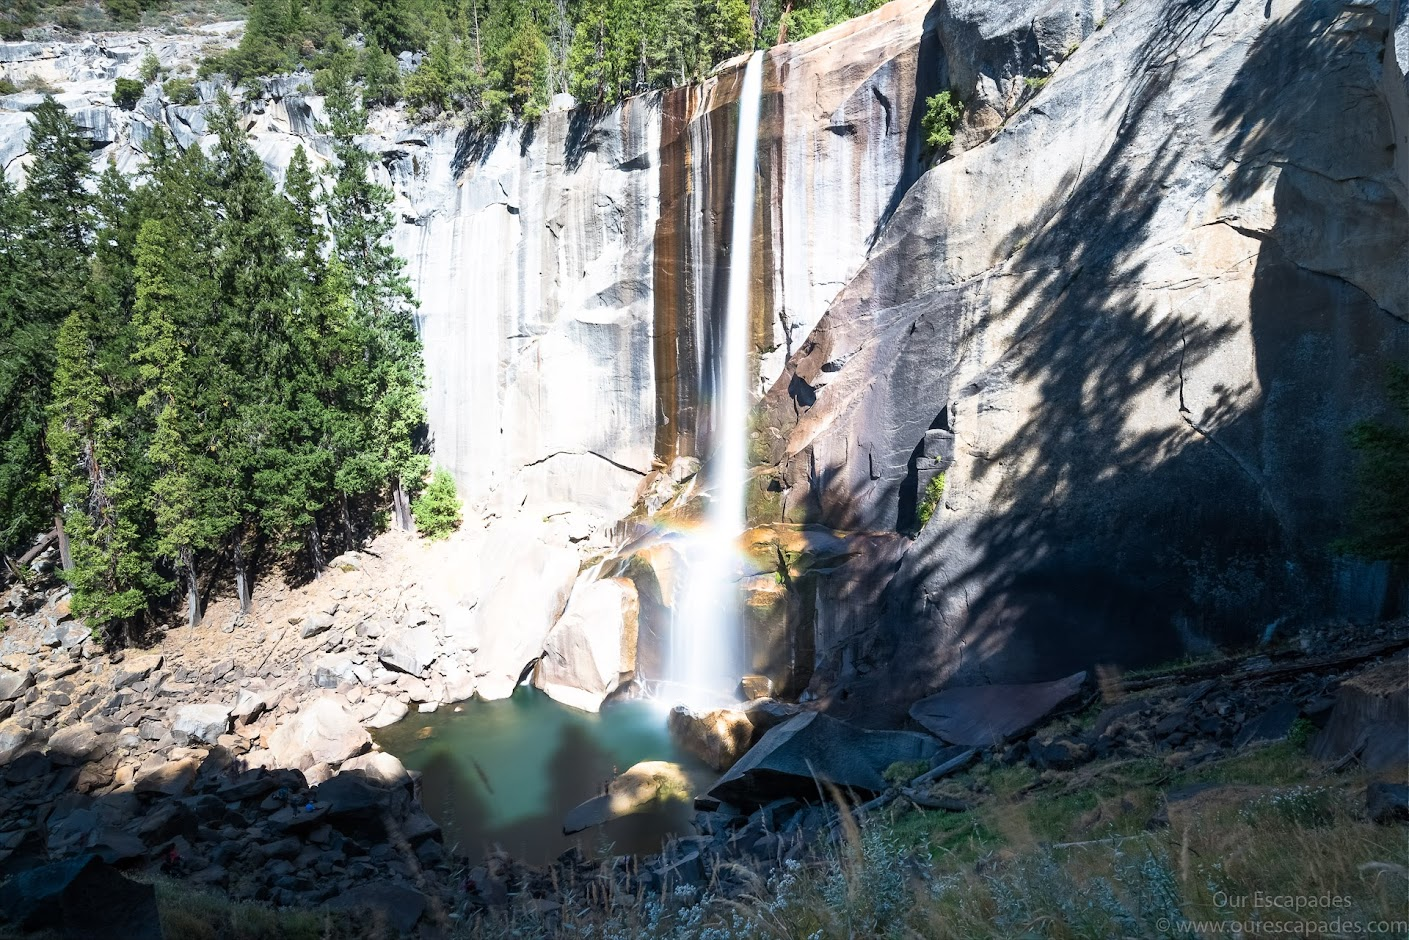 View of the Vernal Falls